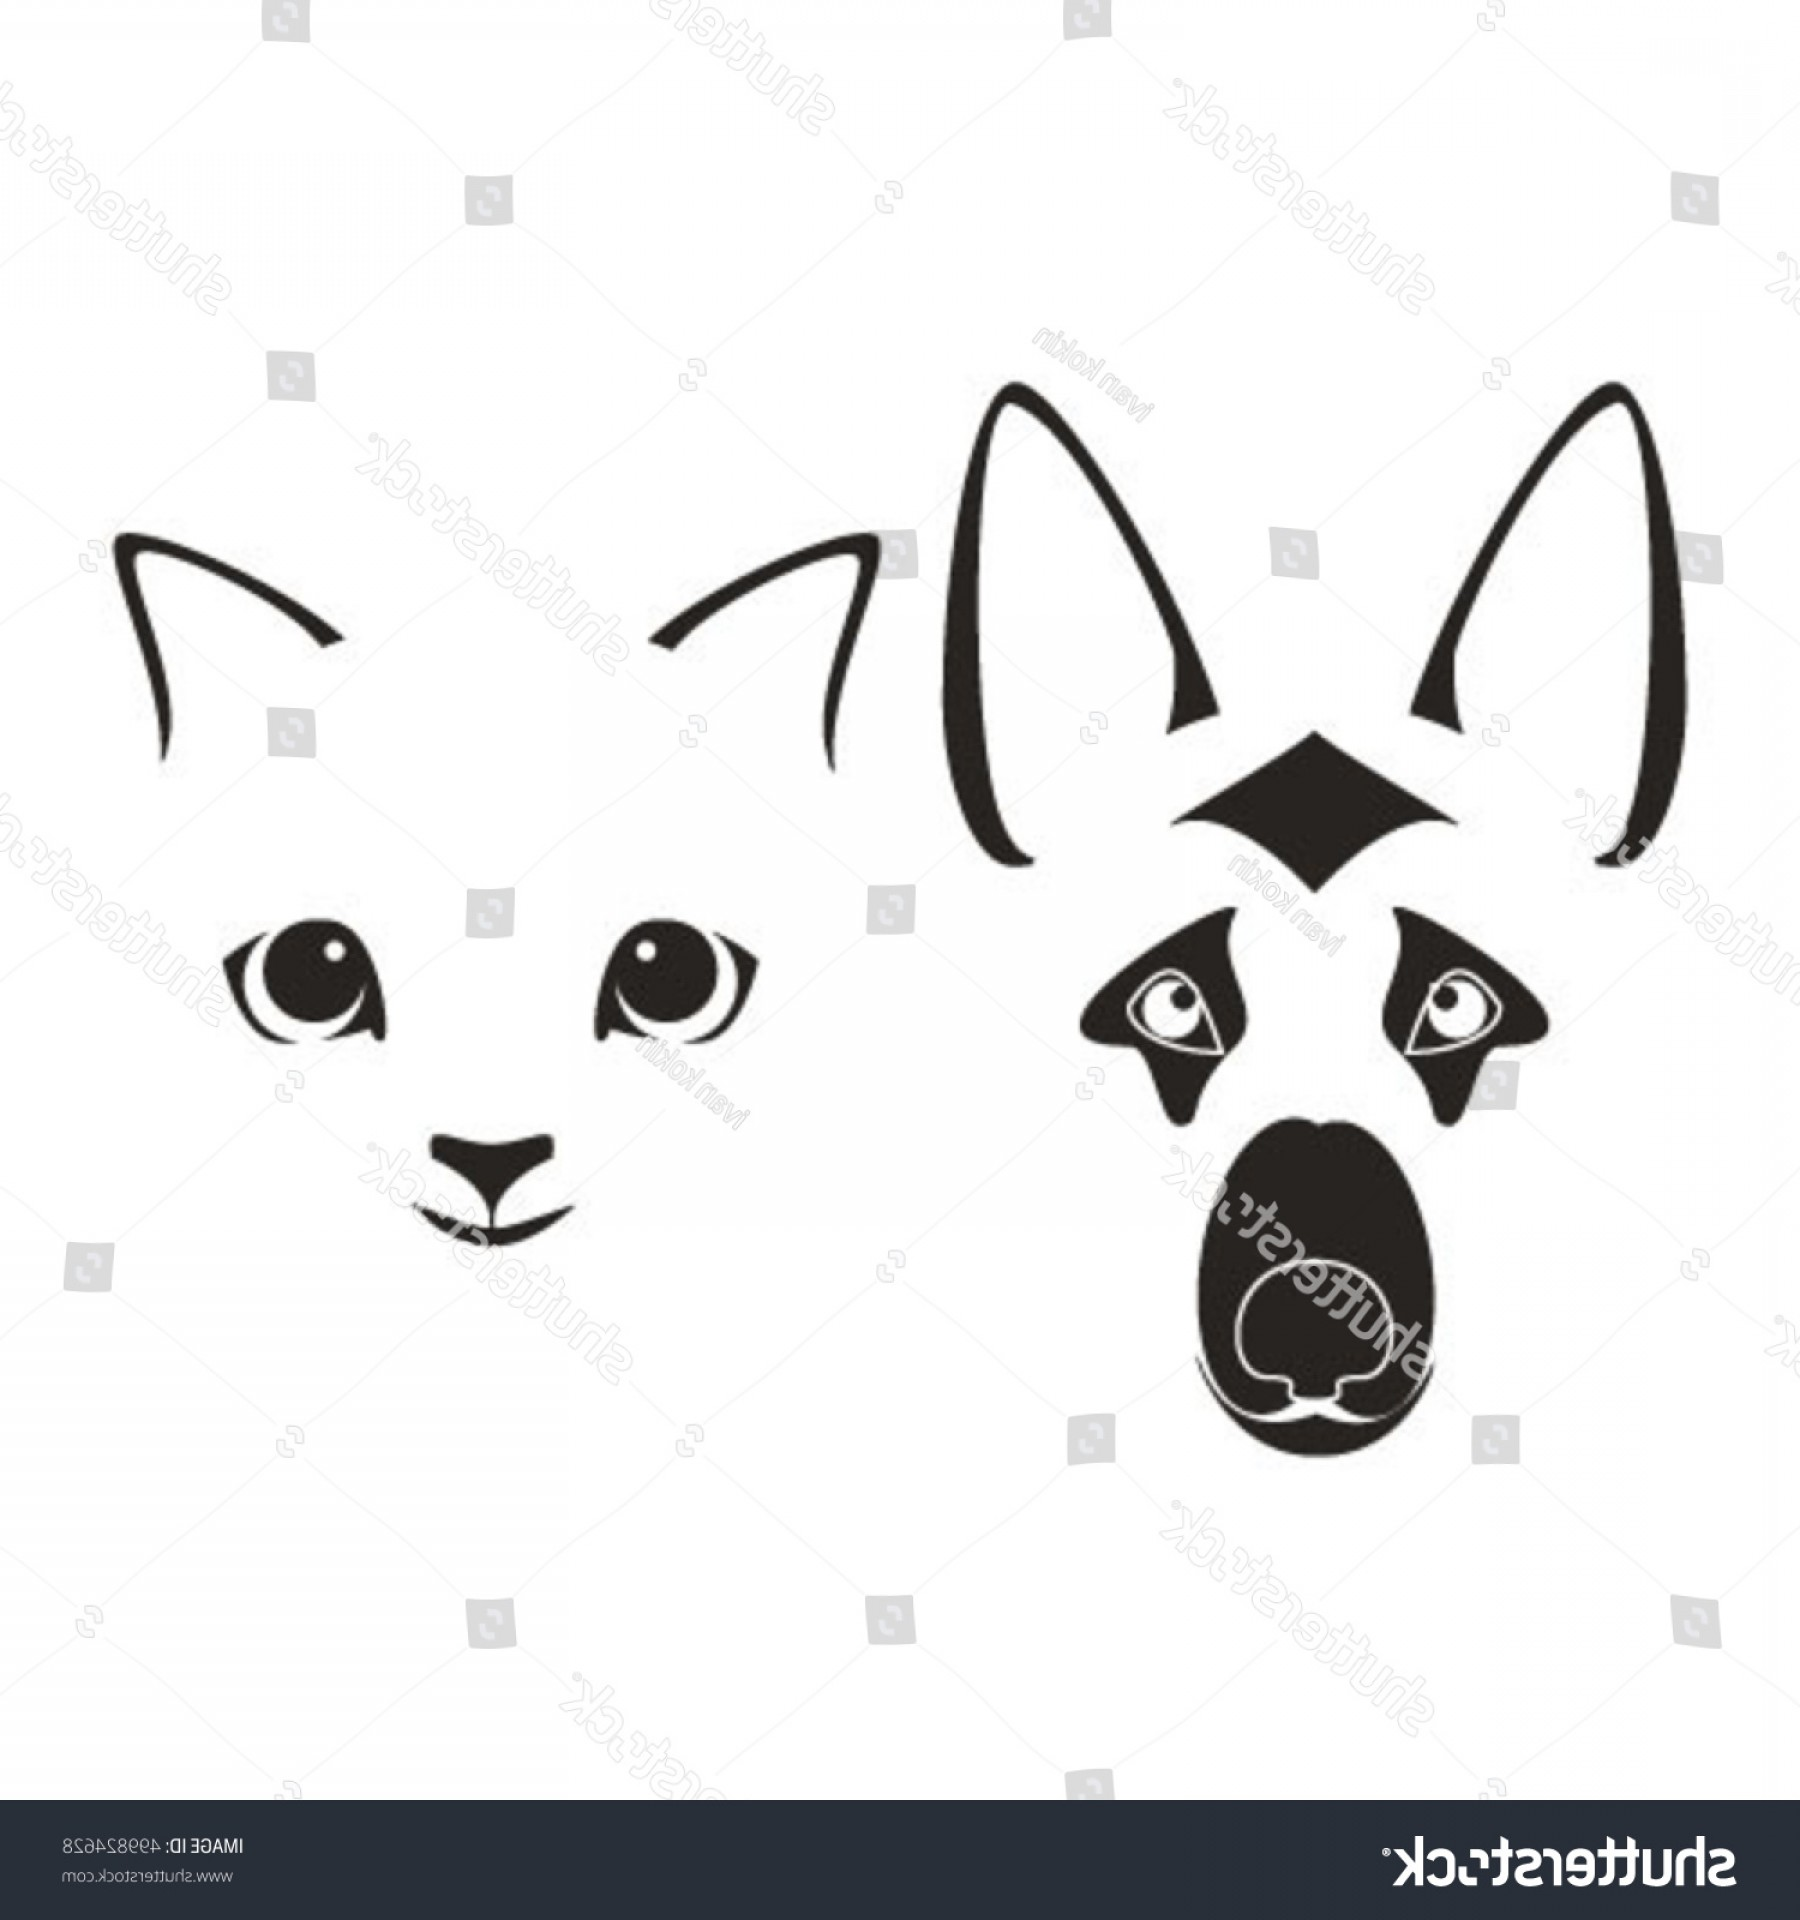 Dog And Cat Vector Illustration: Silhouettes Muzzles Dog Cat Vector Illustration